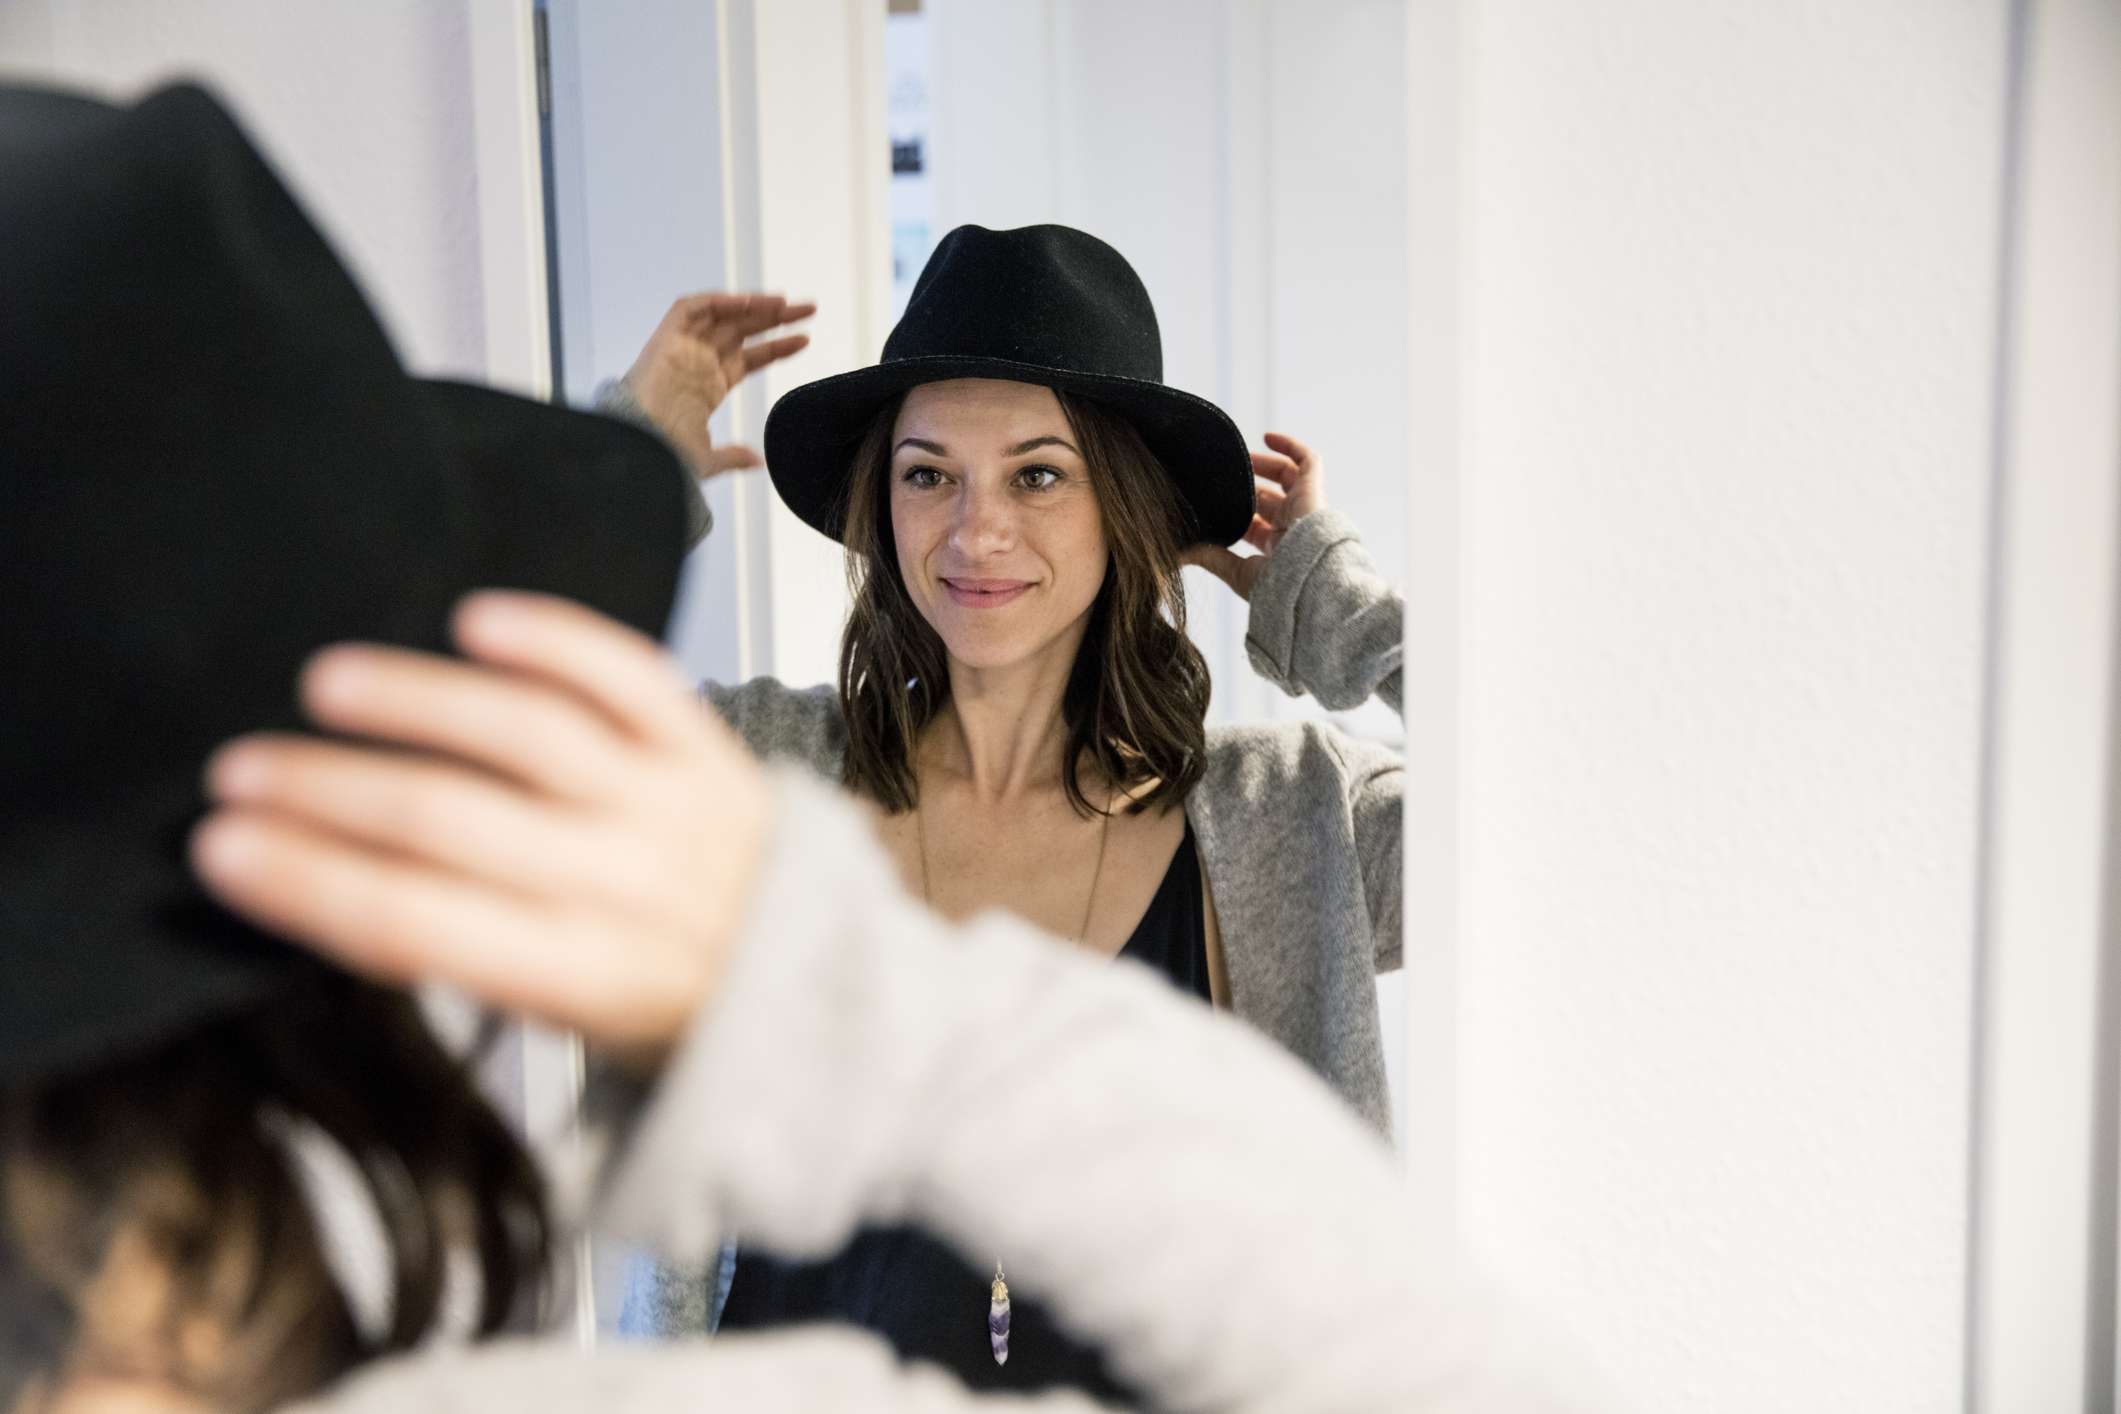 Woman tries on hat in mirror